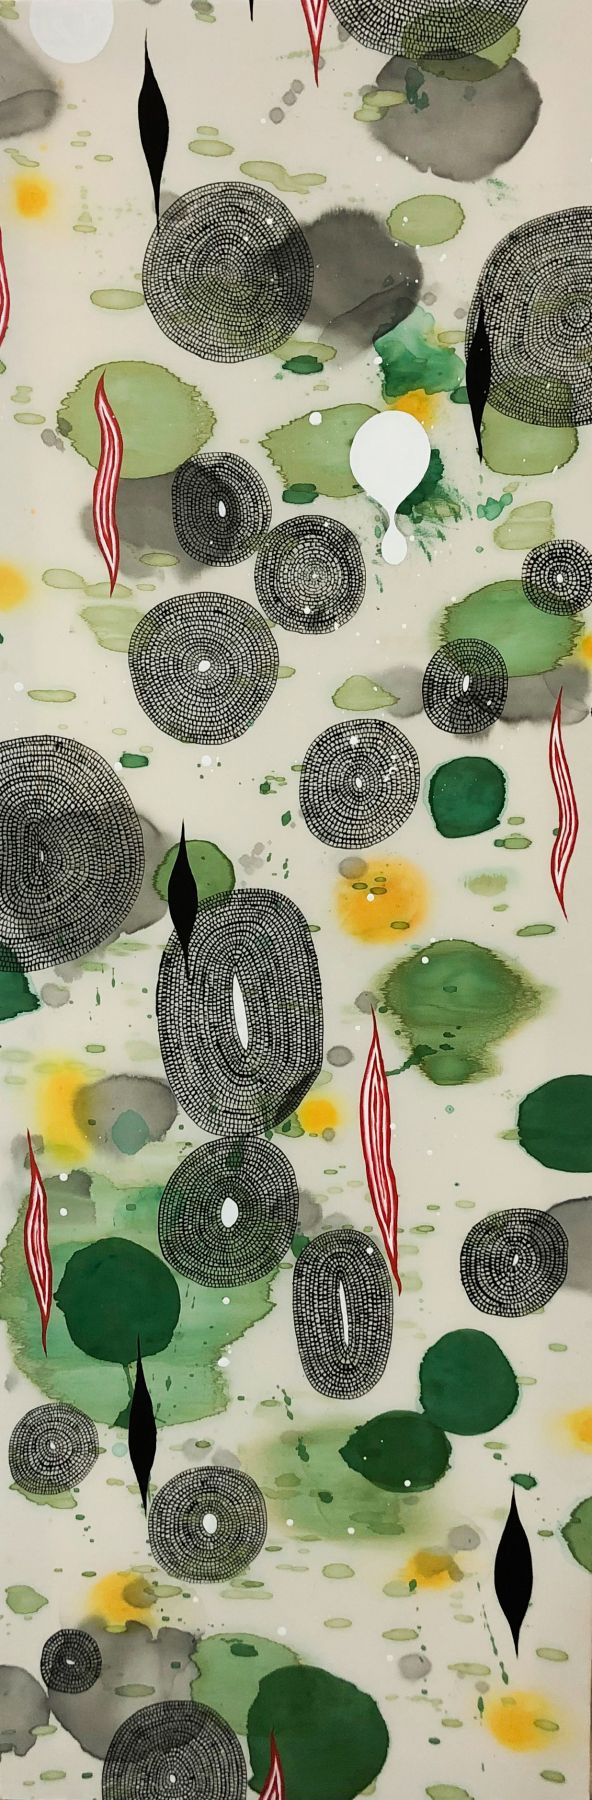 Andalusia I from Open Horizons by Fumiko Negishi at Hg Contemporary